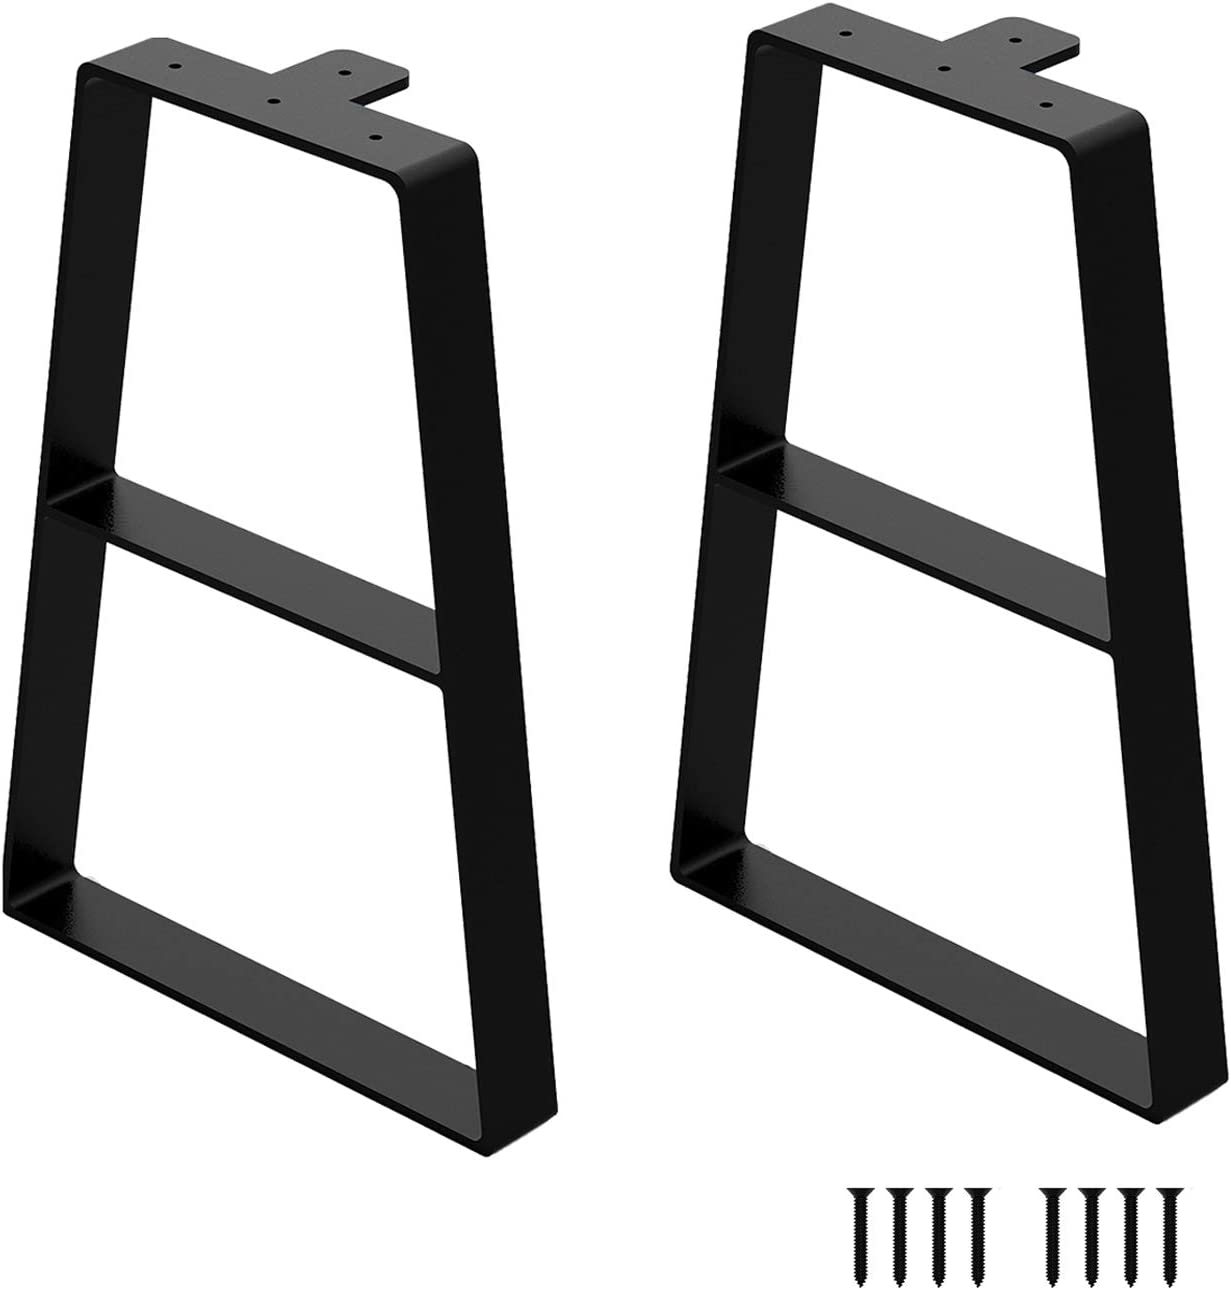 VitaPoria 16Inch Black Metal Max 84% OFF Bench Legs Trapezoid Table 2Pcs L At the price of surprise